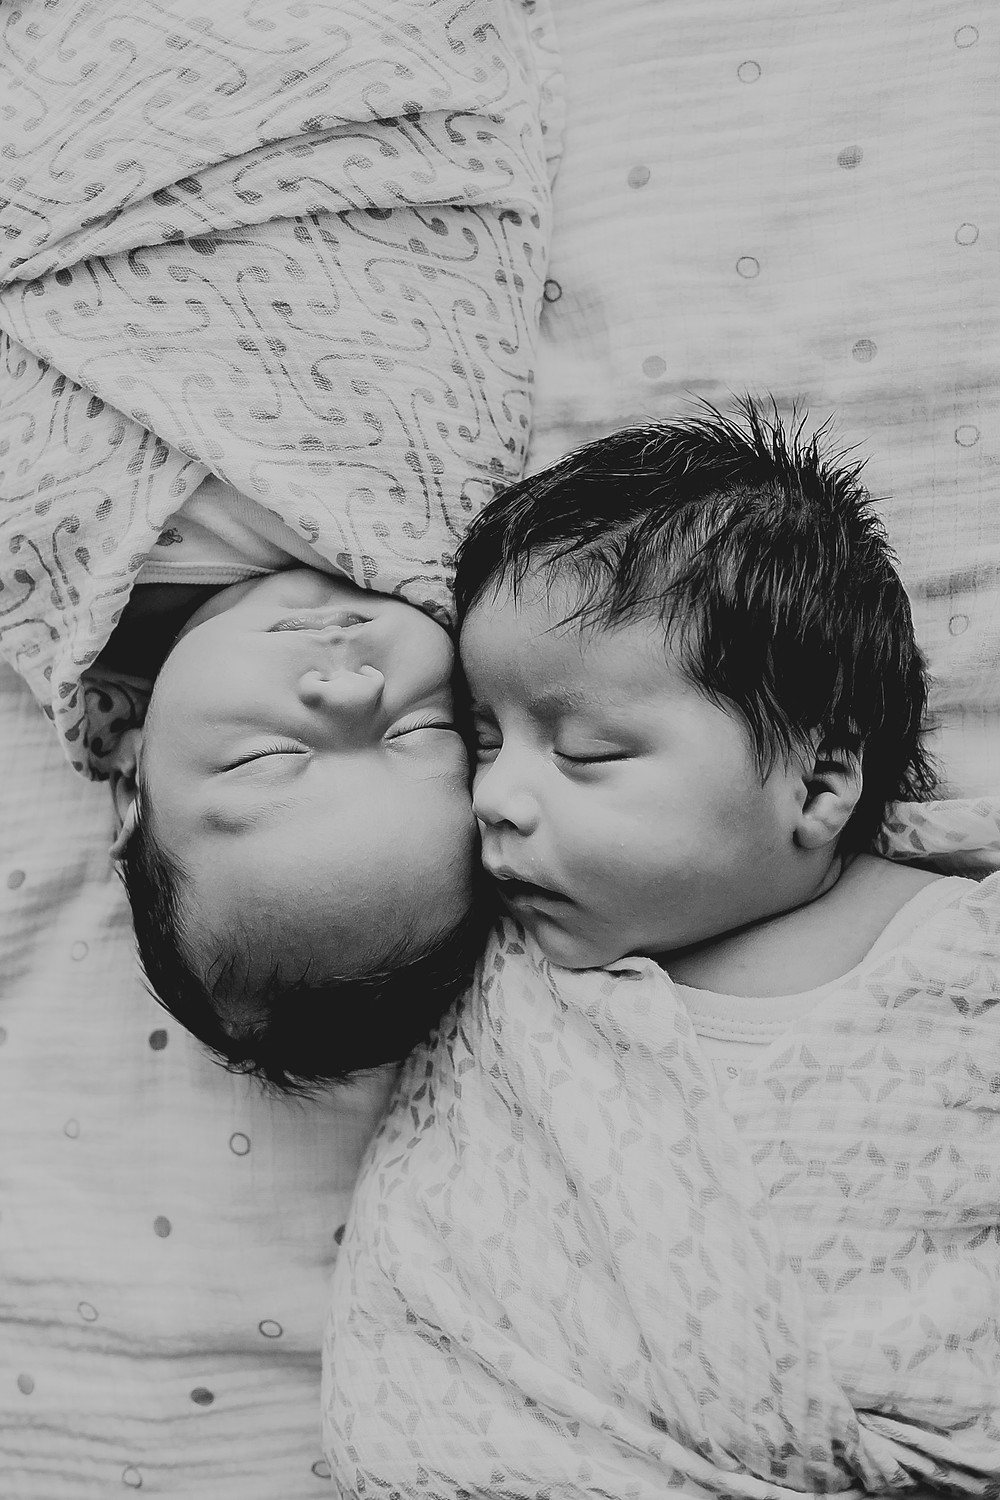 Twin newborn boys, cheeks together, heads in opposite directions, peacefully asleep.